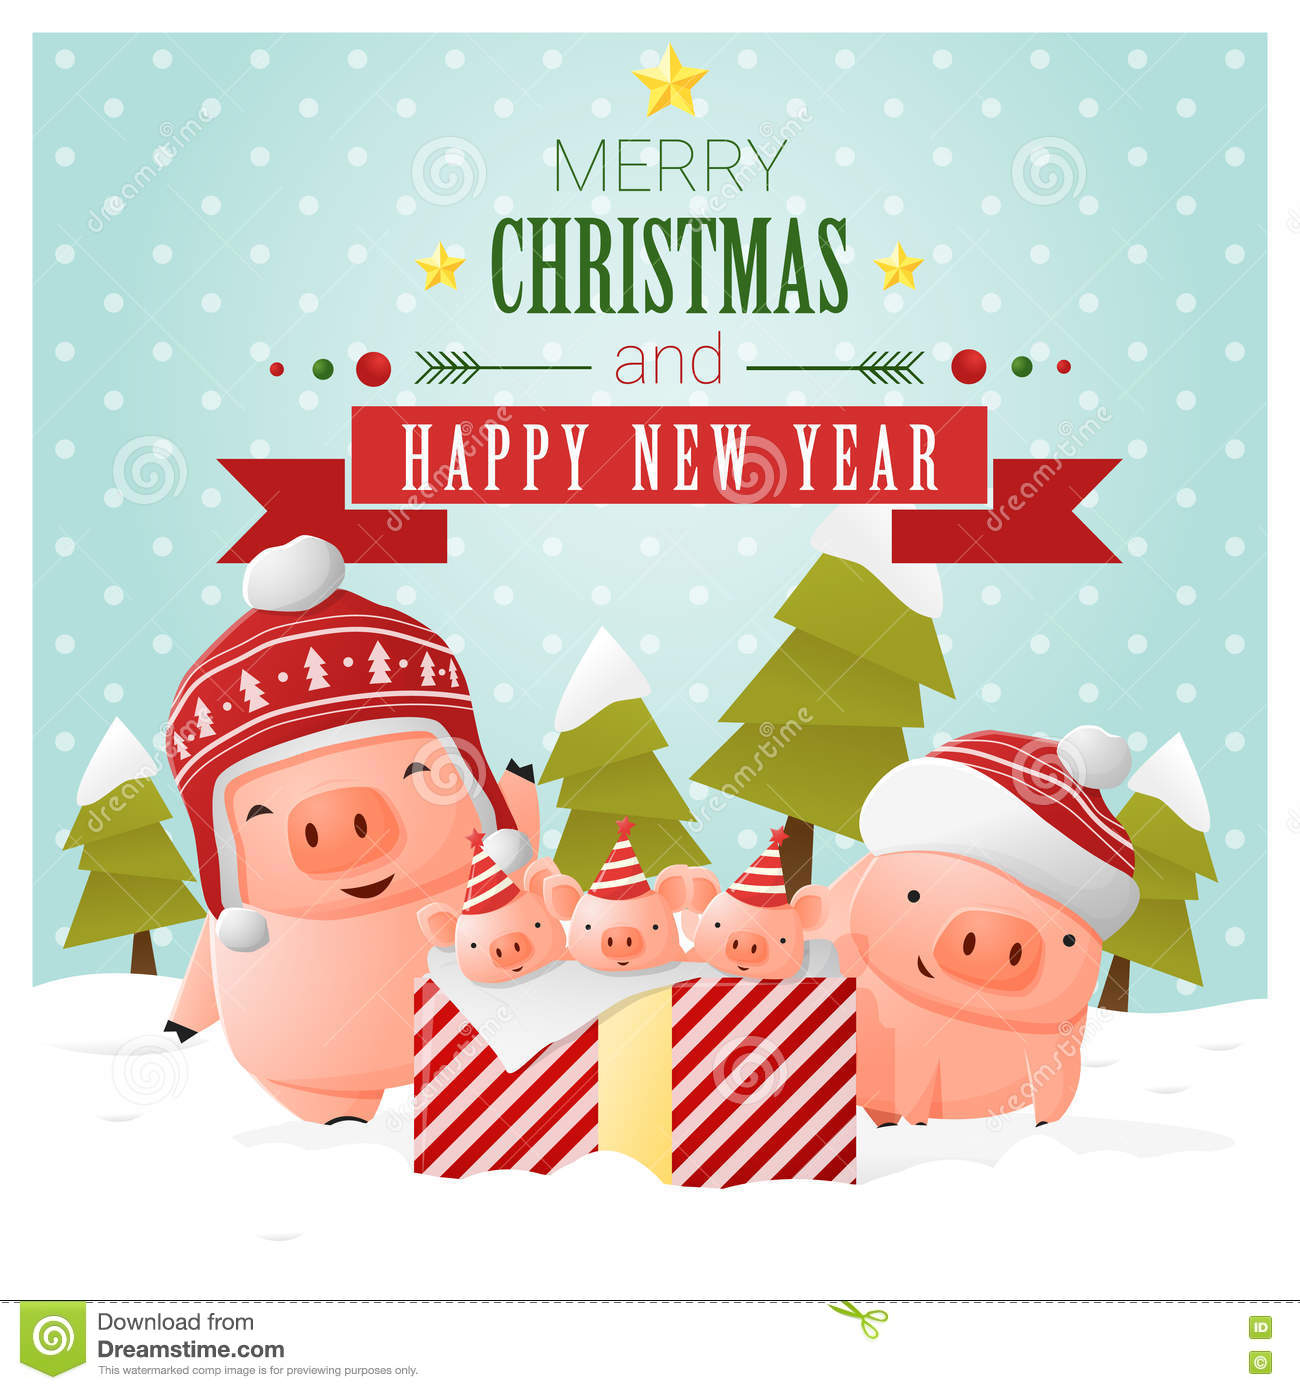 merry christmas and happy new year greeting card with pig family